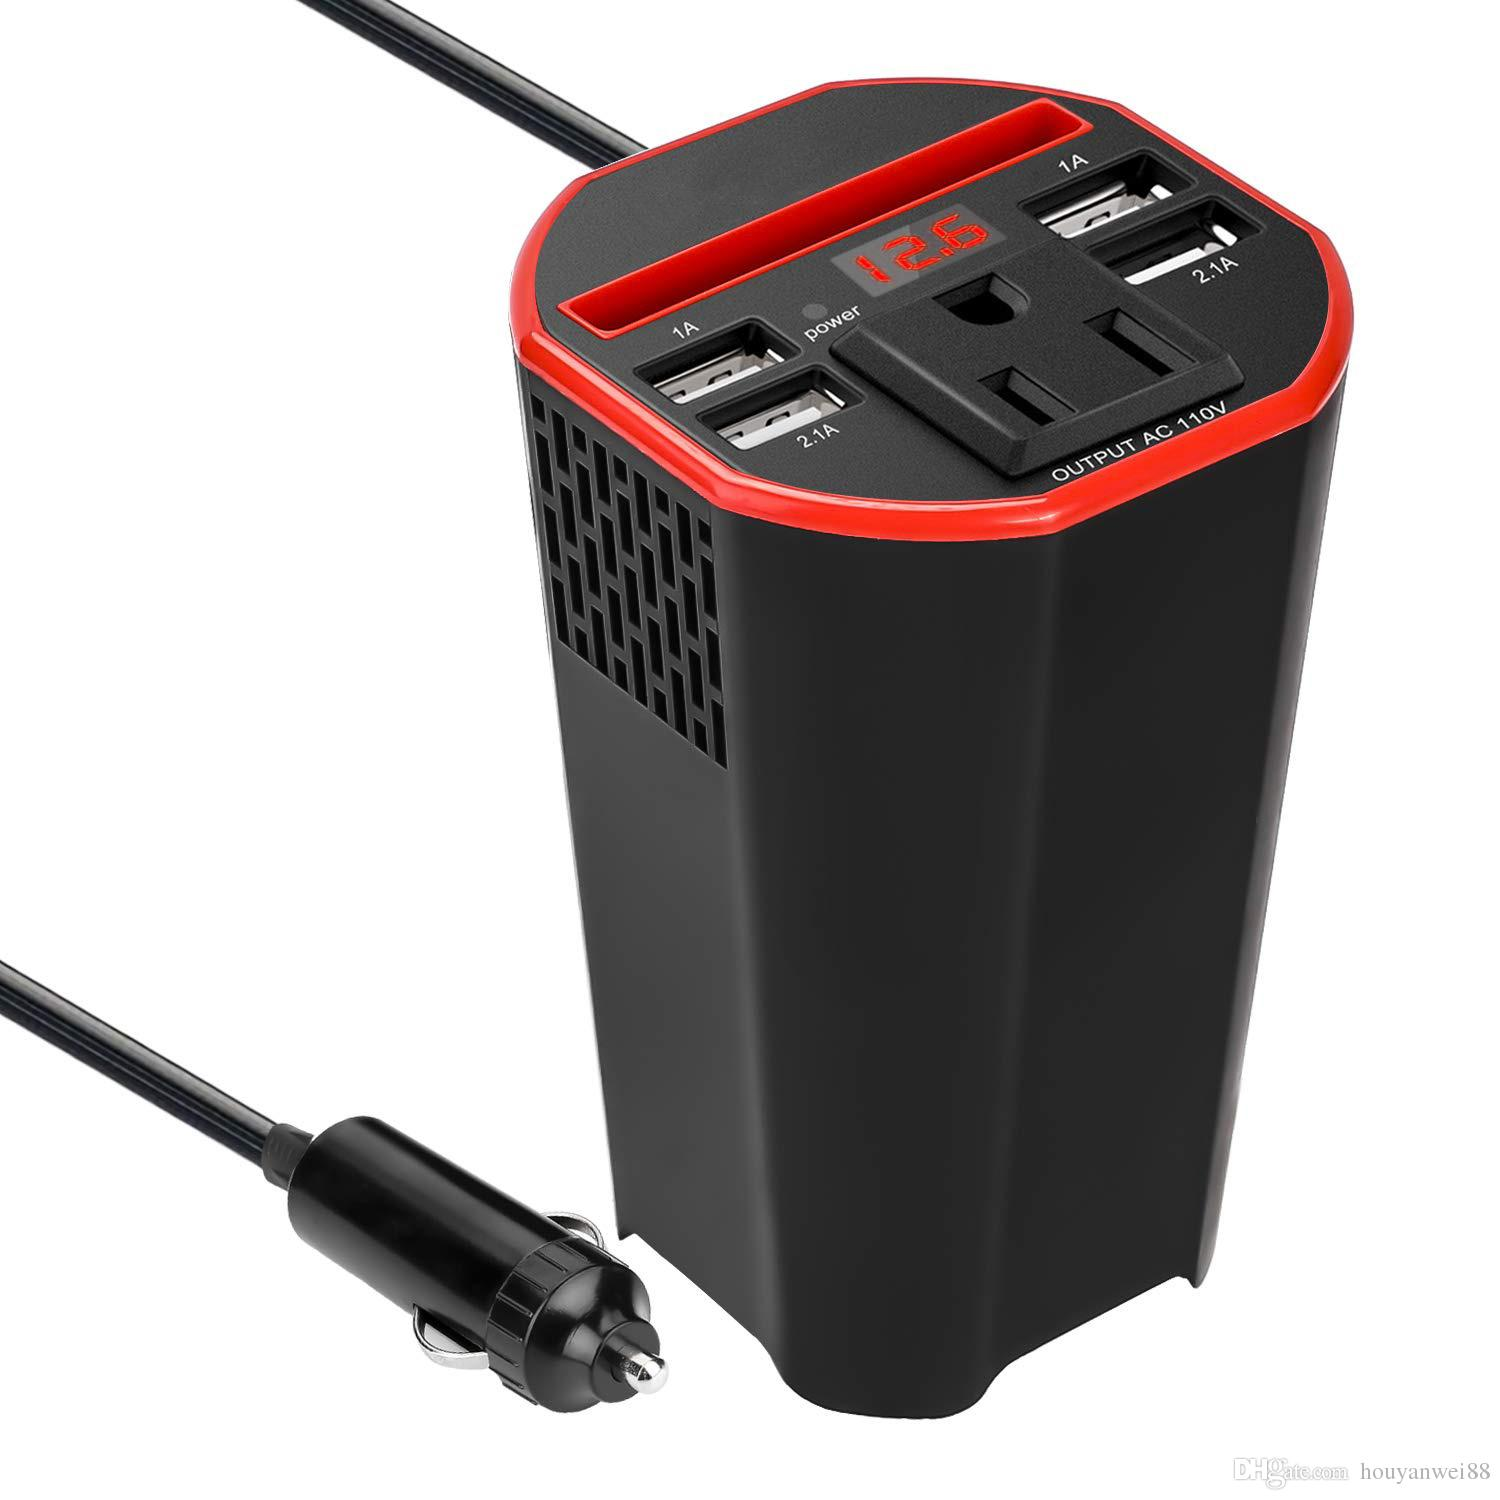 150W Car Power Inverter DC 12v to 110v AC Converter with Digital Display 6.2A 4 USB Ports Car Cup Holder Charger Adapter Red